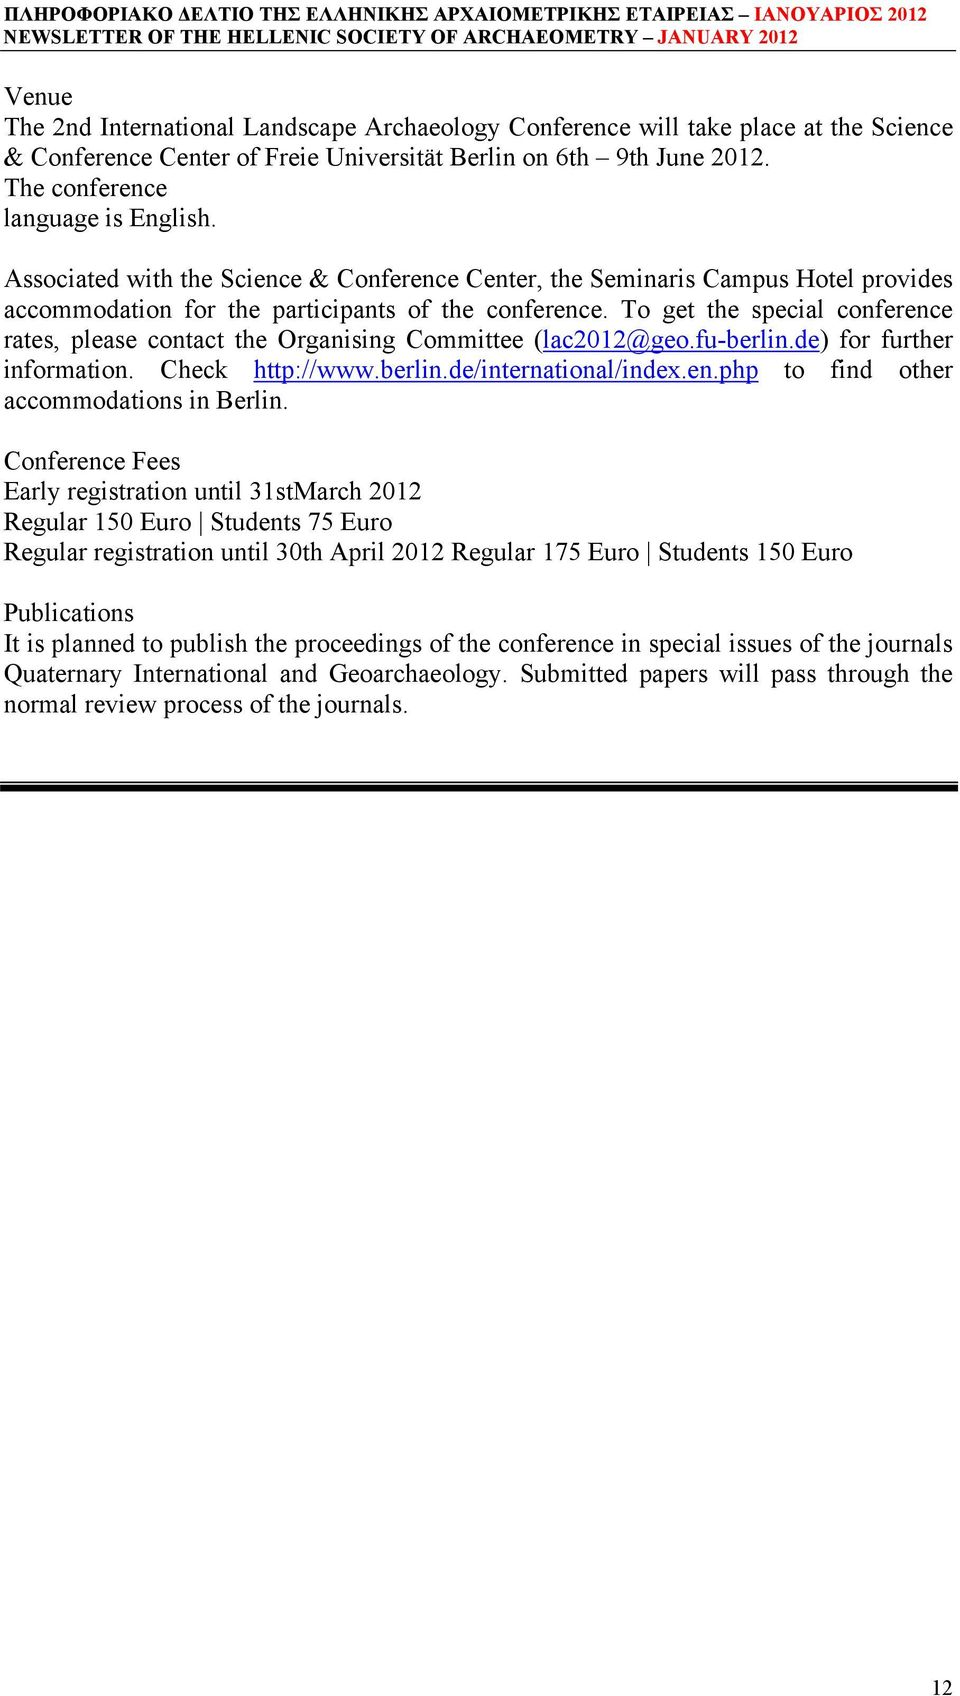 To get the special conference rates, please contact the Organising Committee (lac2012@geo.fu-berlin.de) for further information. Check http://www.berlin.de/international/index.en.php to find other accommodations in Berlin.